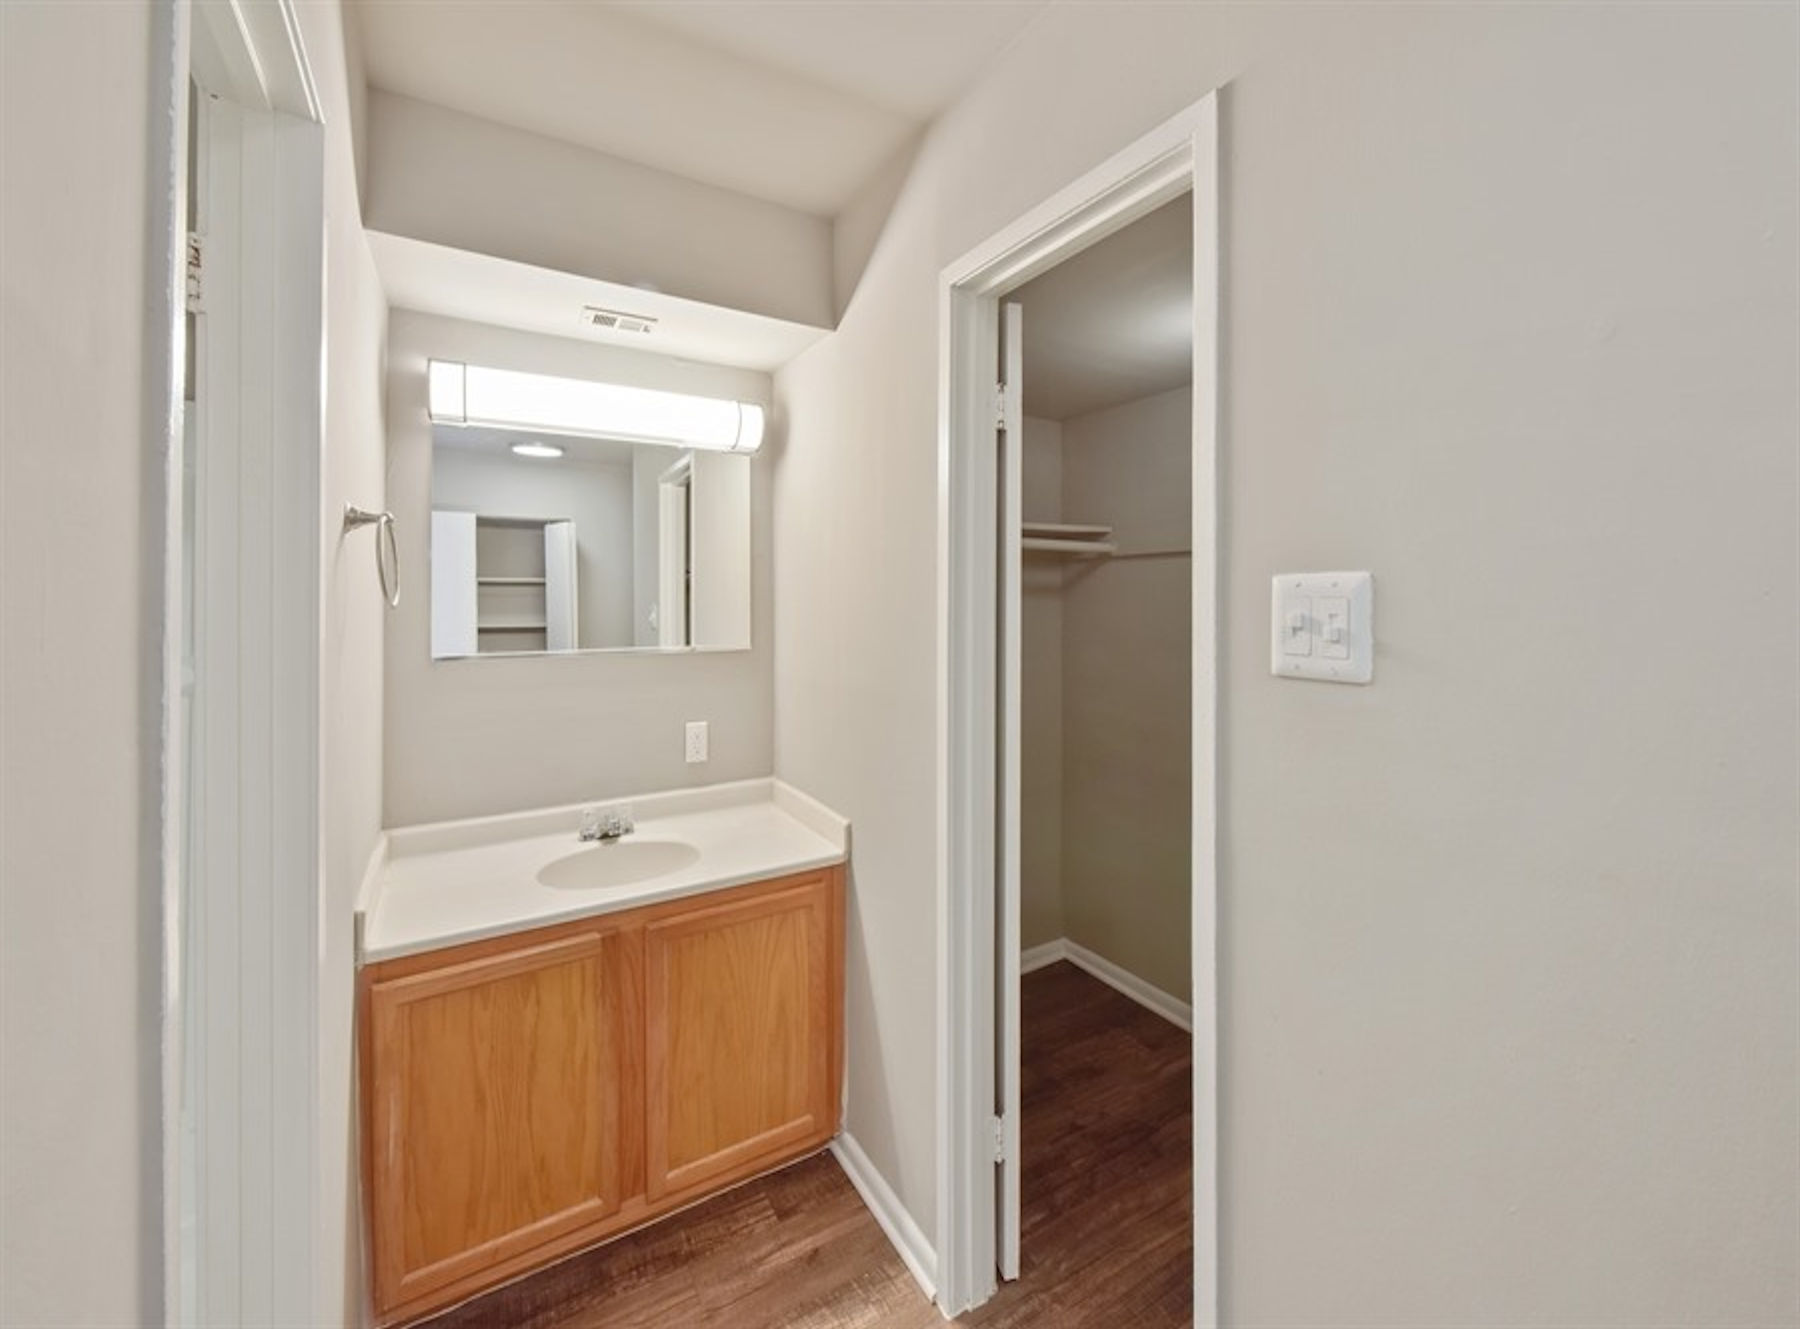 Model bathroom with large mirror.